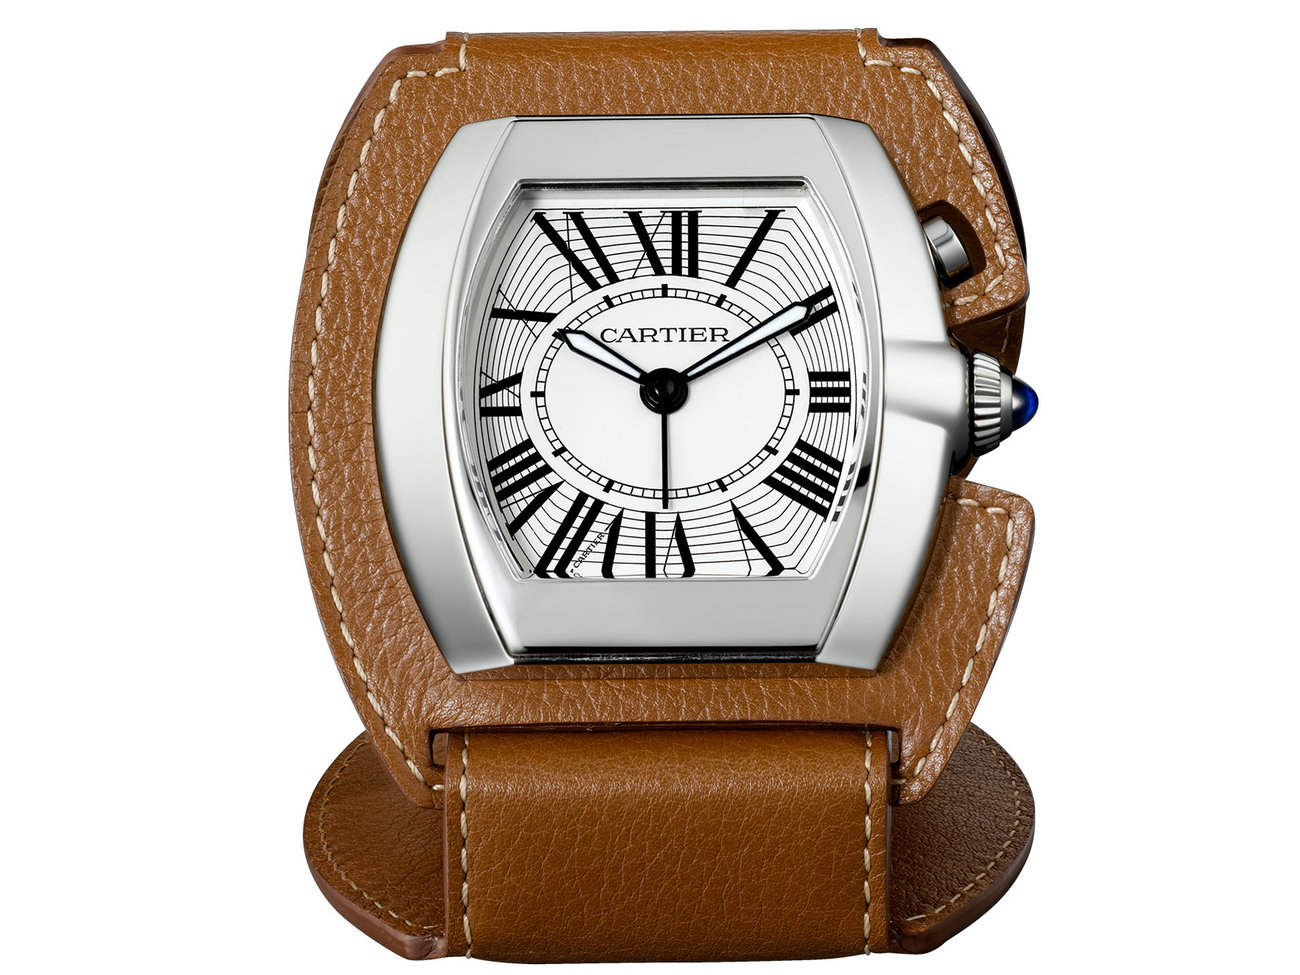 cartier-leather-clock-GG1215.jpg